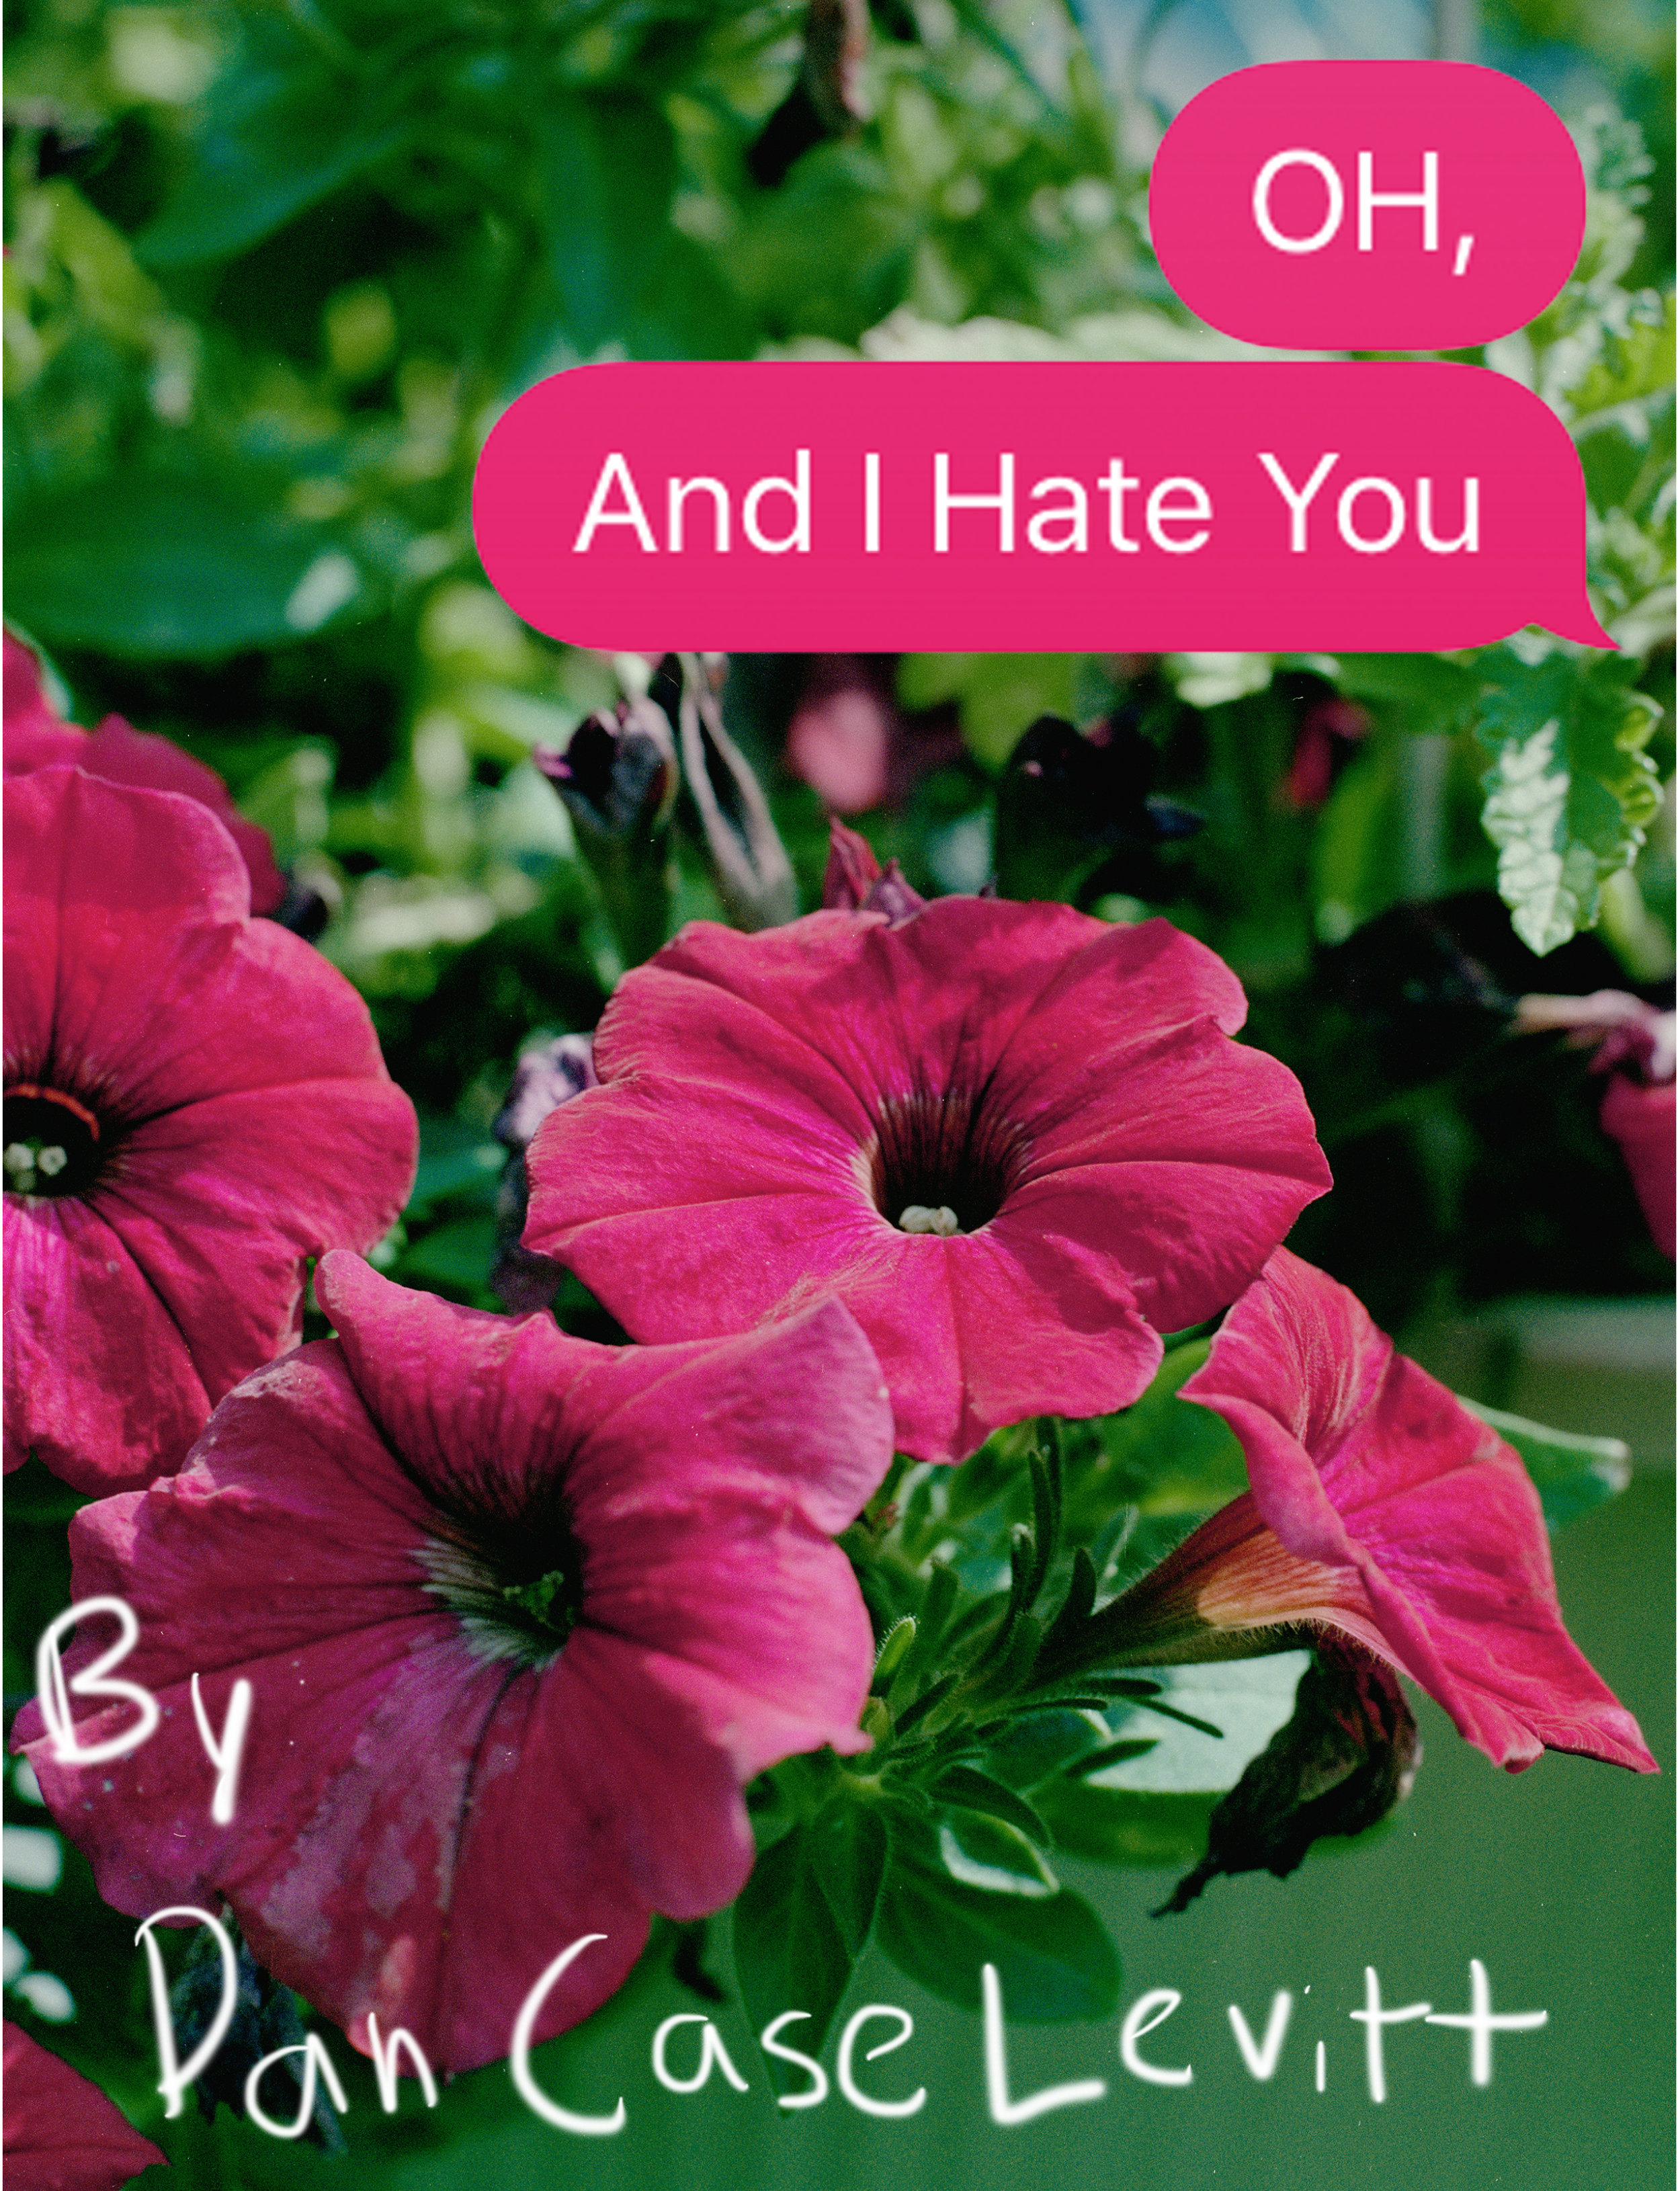 And I Hate You_WebPages_Final_091718.jpg